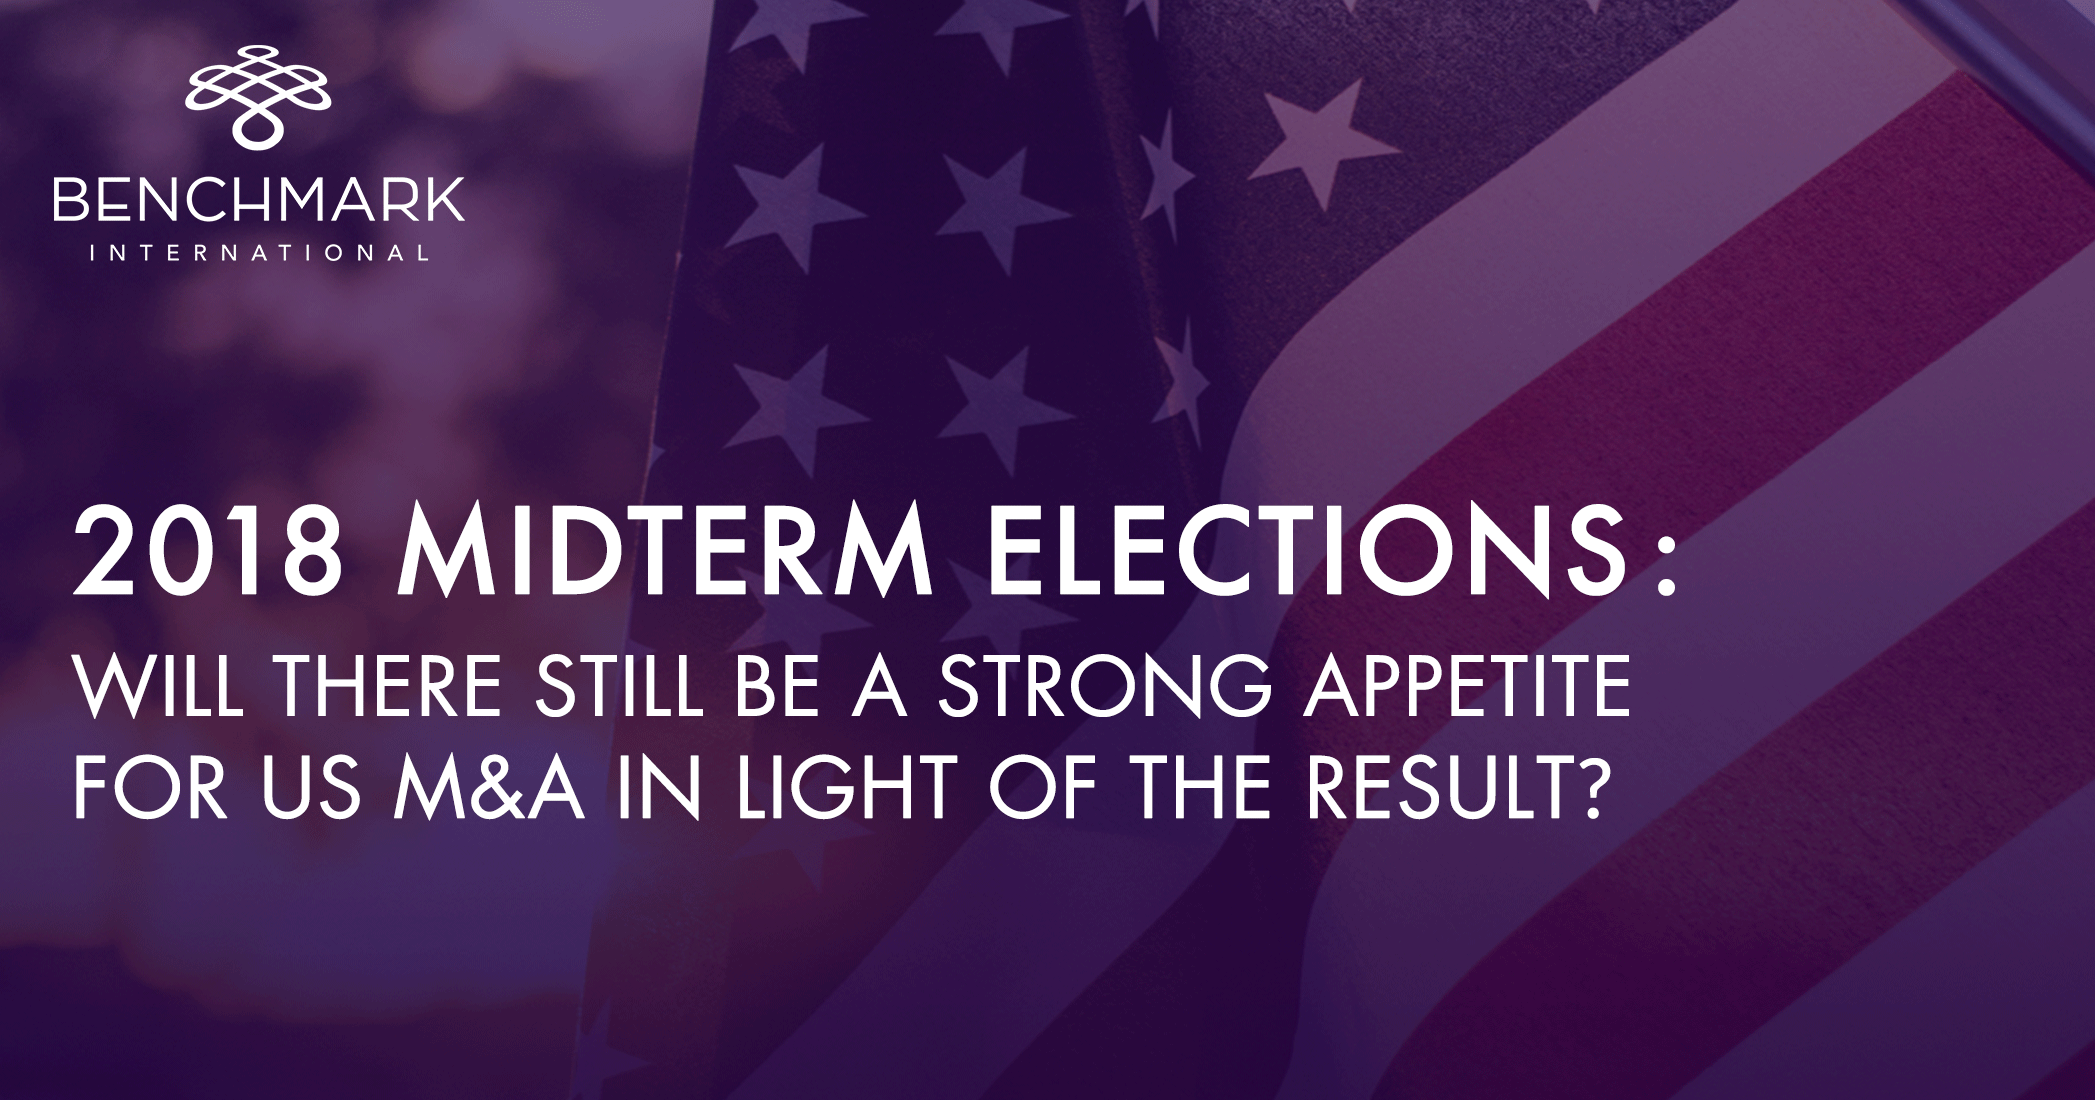 Midterm Elections: The Results Are In, What Do They Mean for M&A?